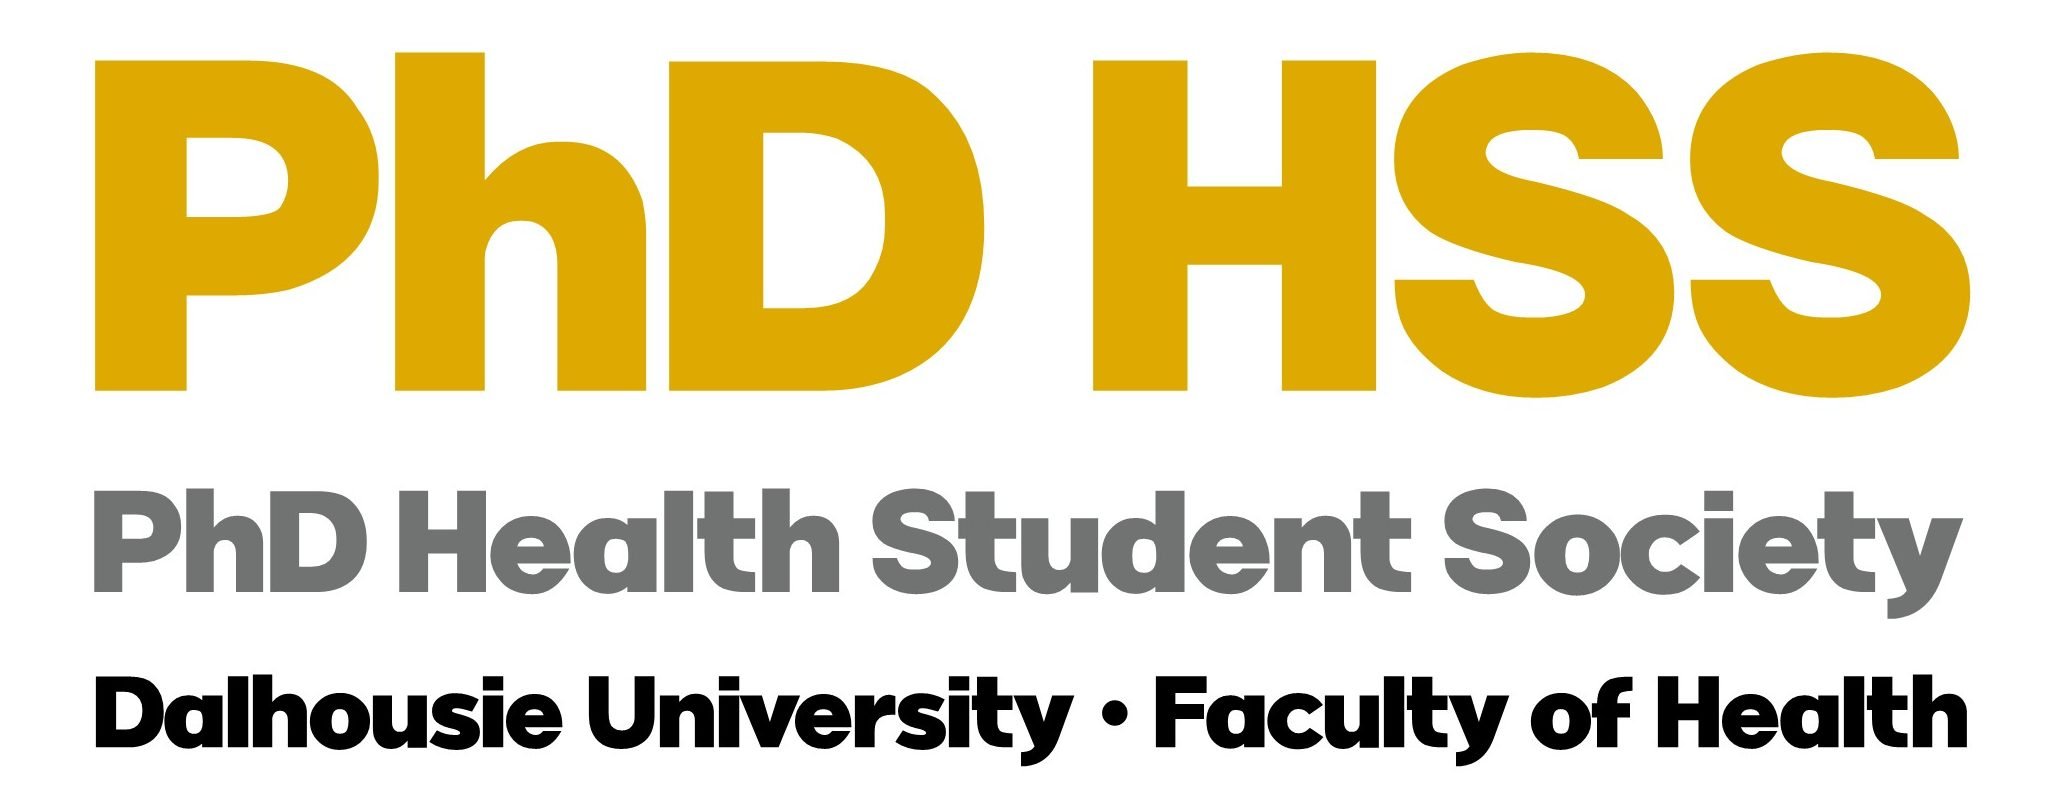 PhD Health Student Society